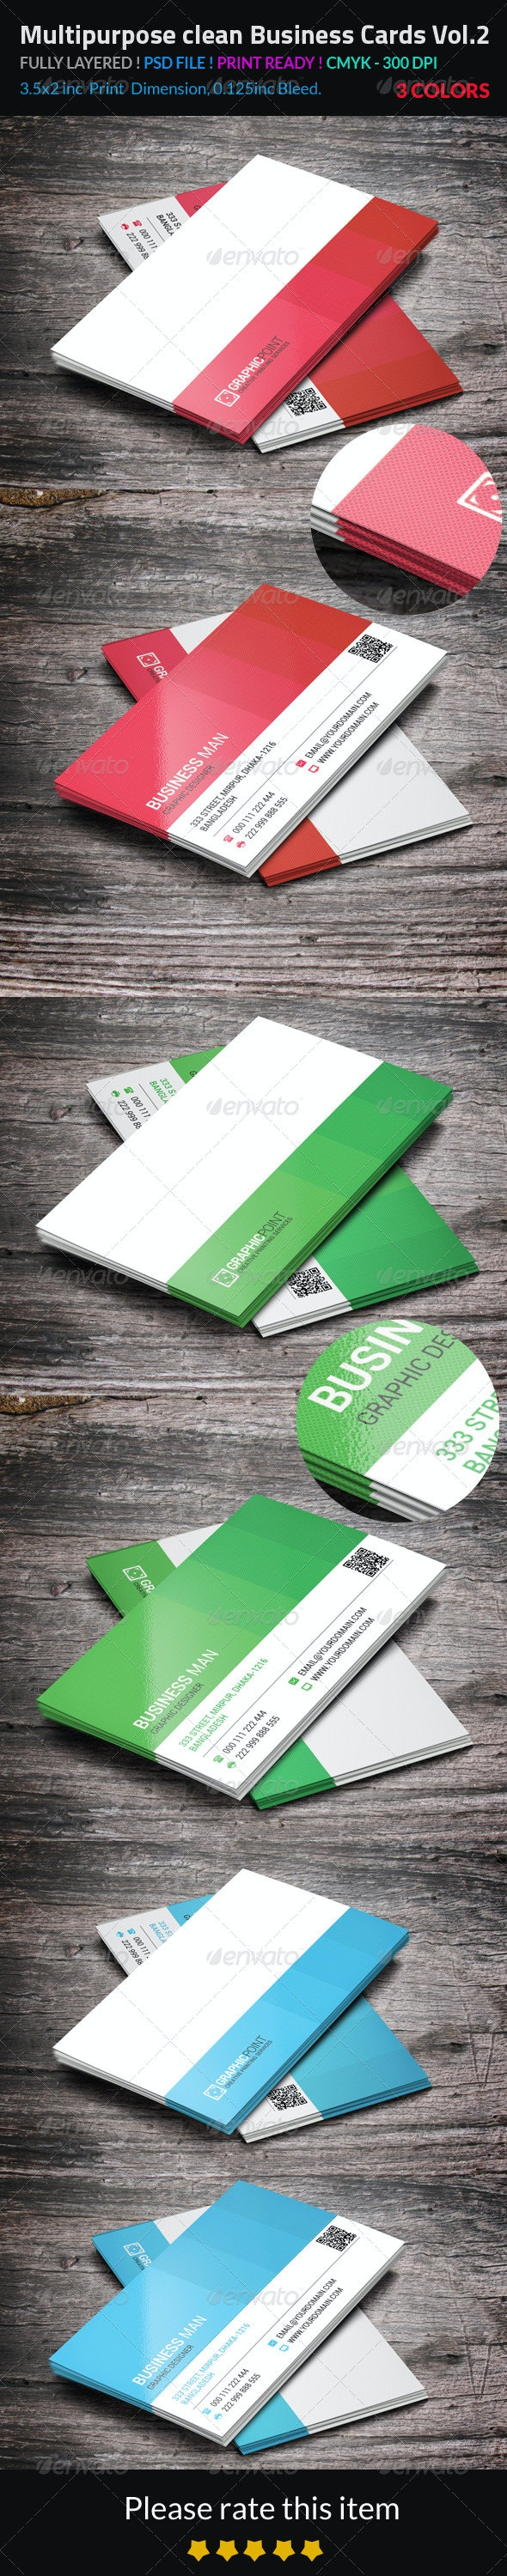 Multipurpose Clean Business Cards Vol.2 - Corporate Business Cards